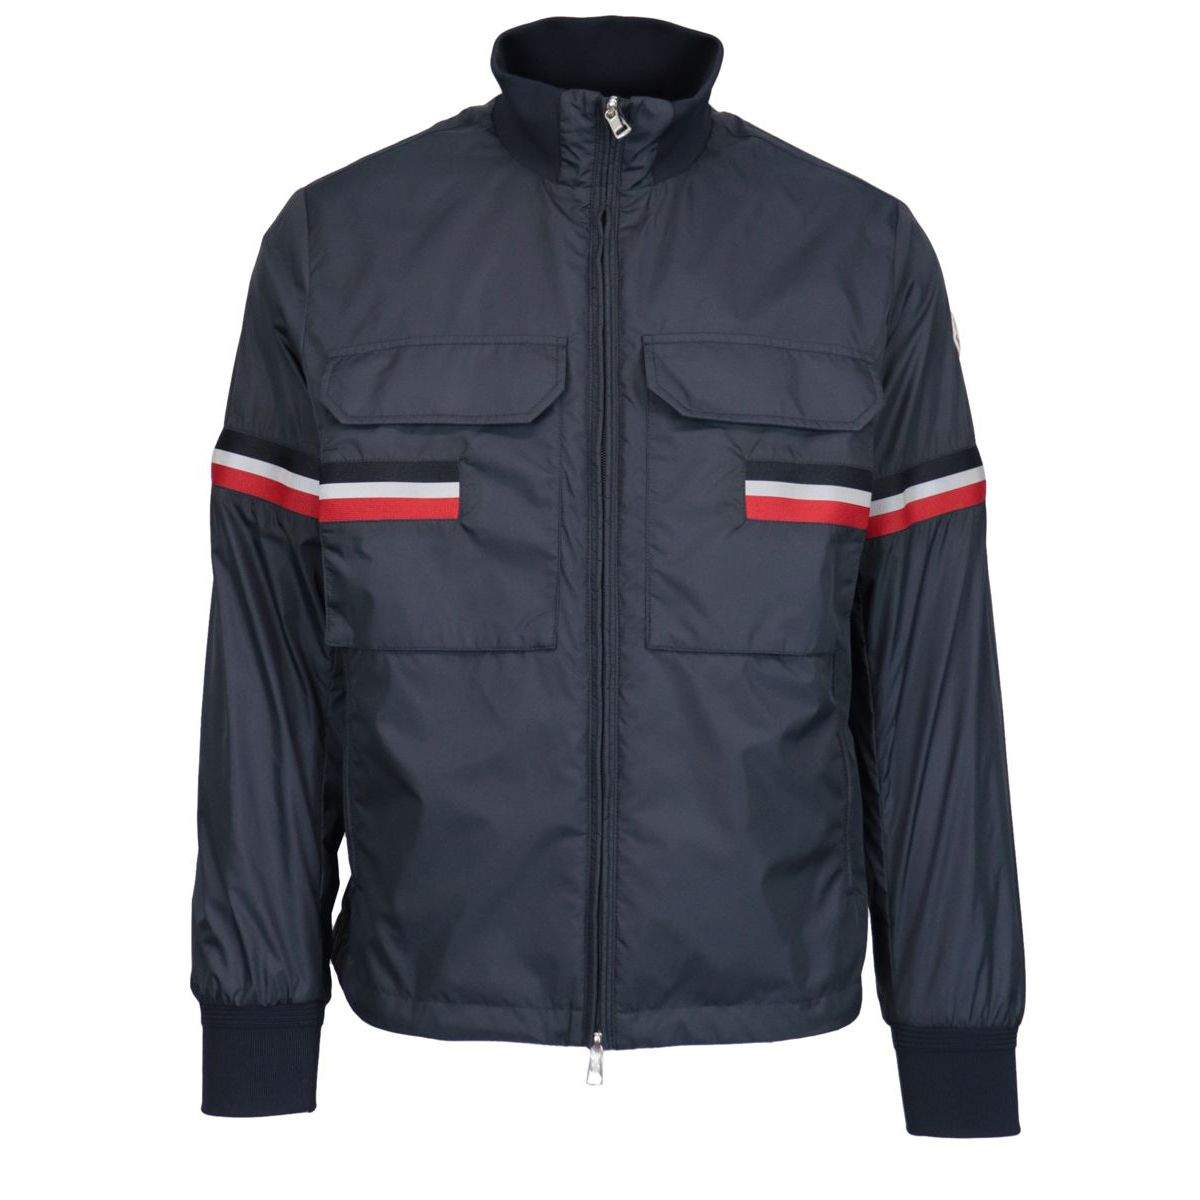 SEINE jacket Blue Moncler